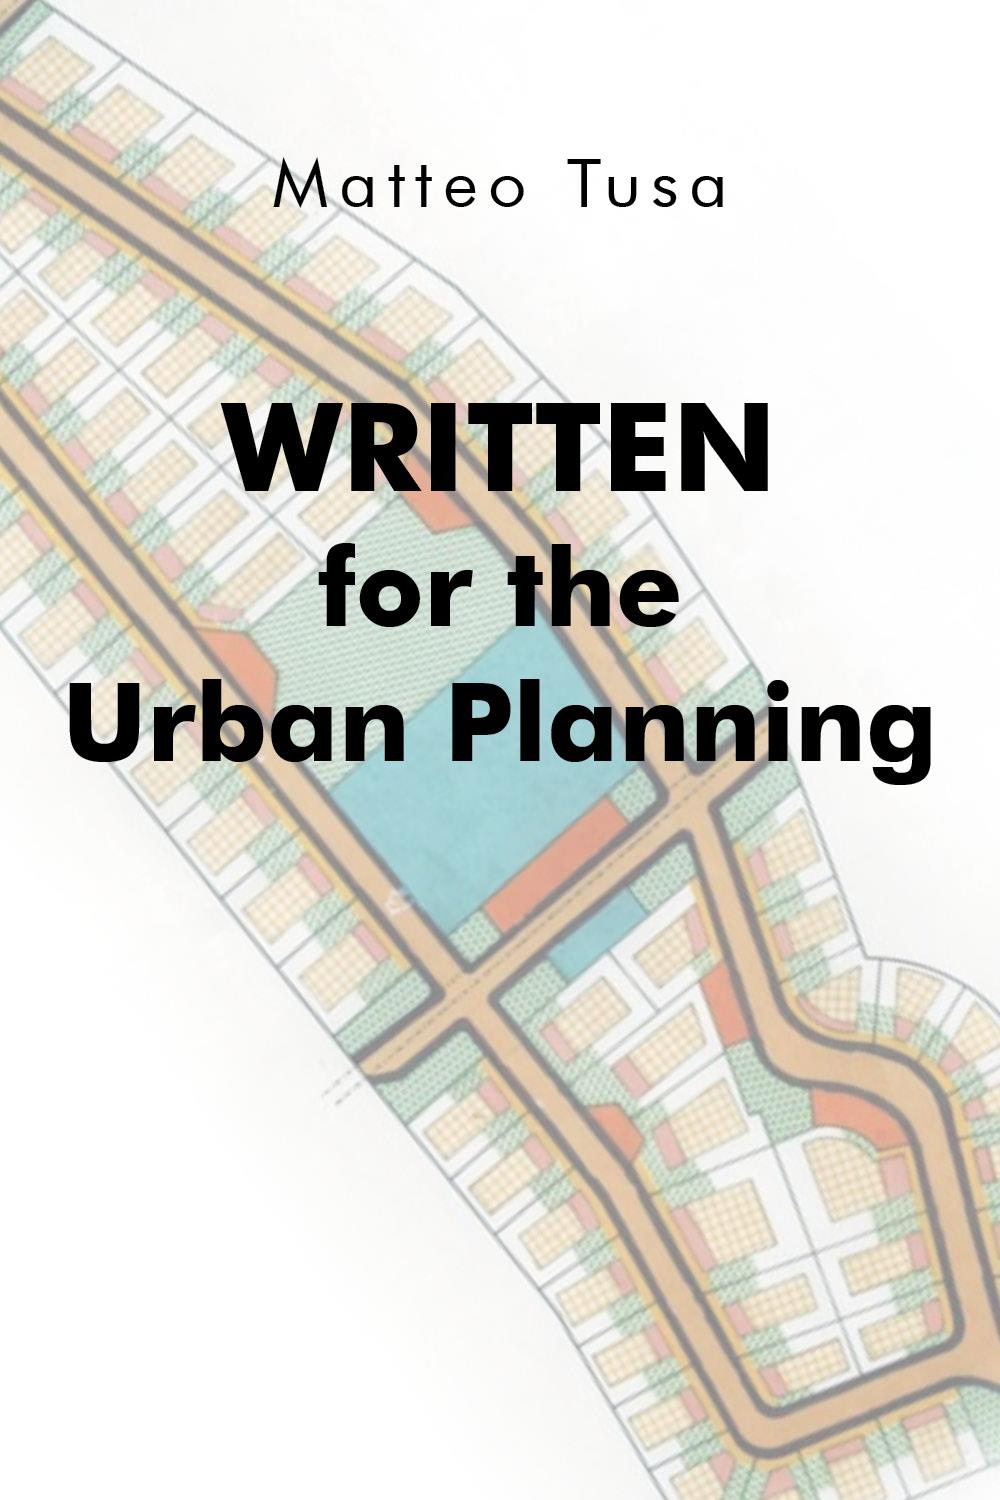 Written for the Urban Planning